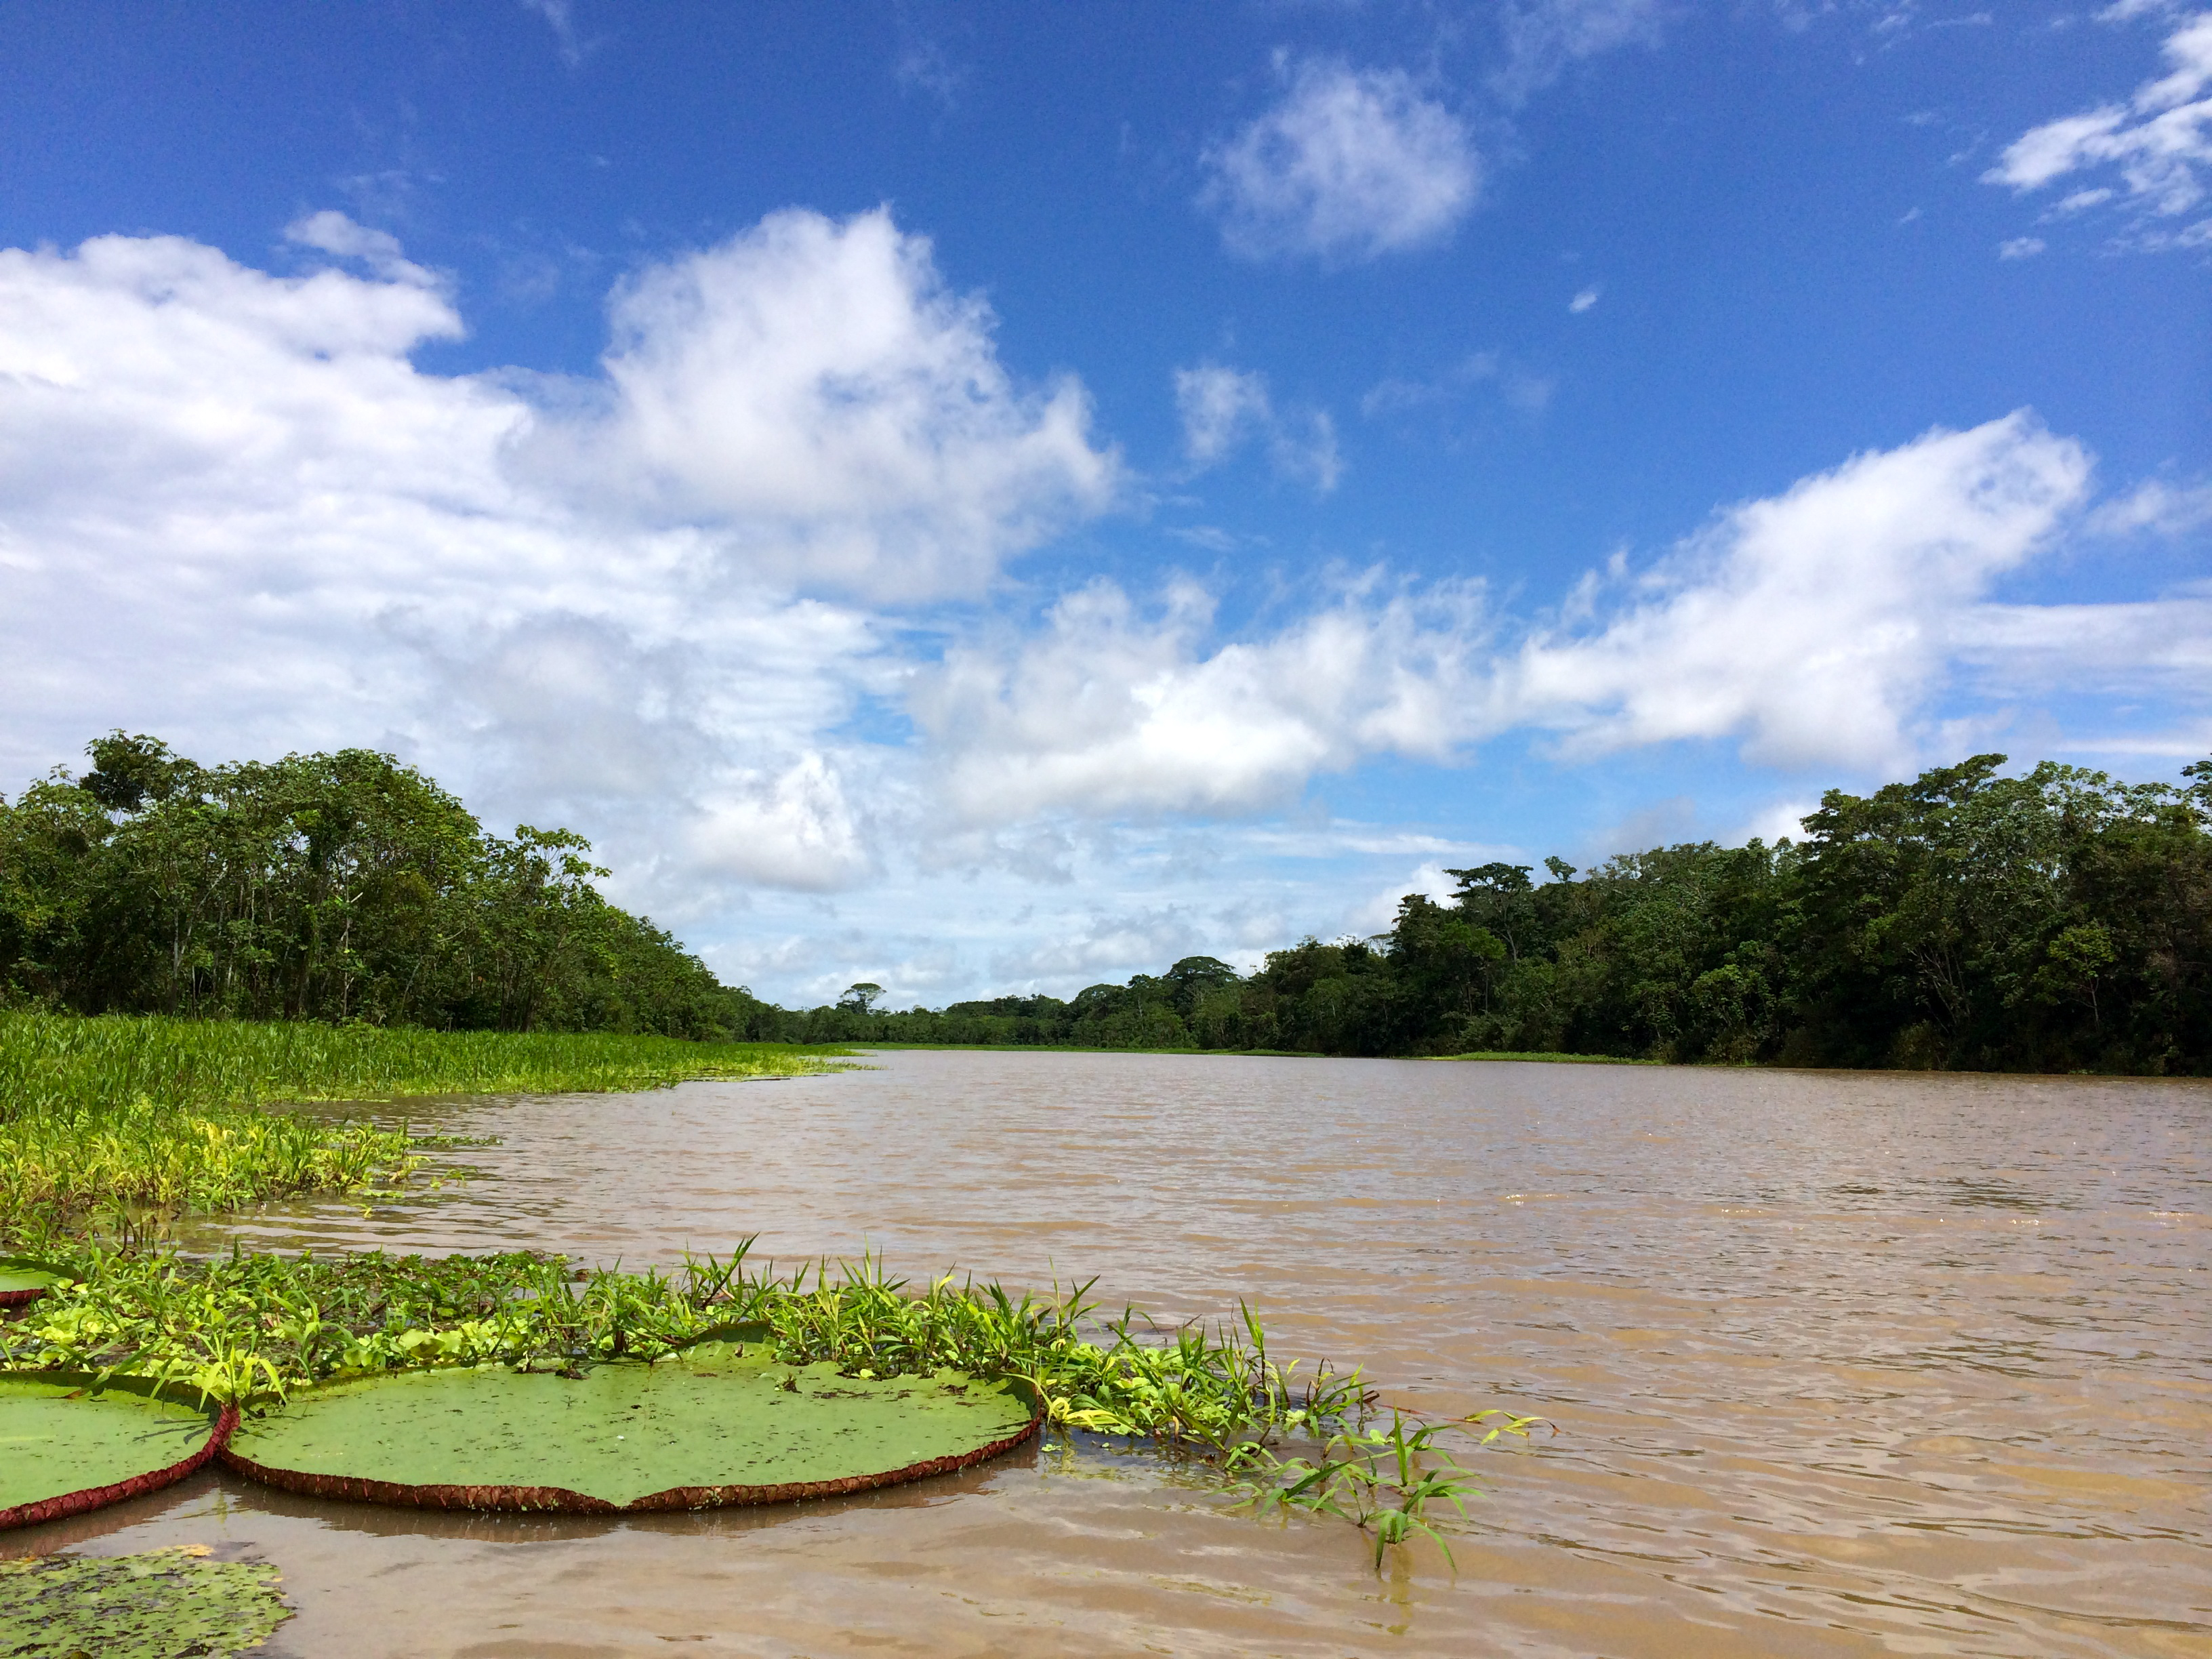 Amazon River | Photo by Wilson Carletti (All Rights Reserved)